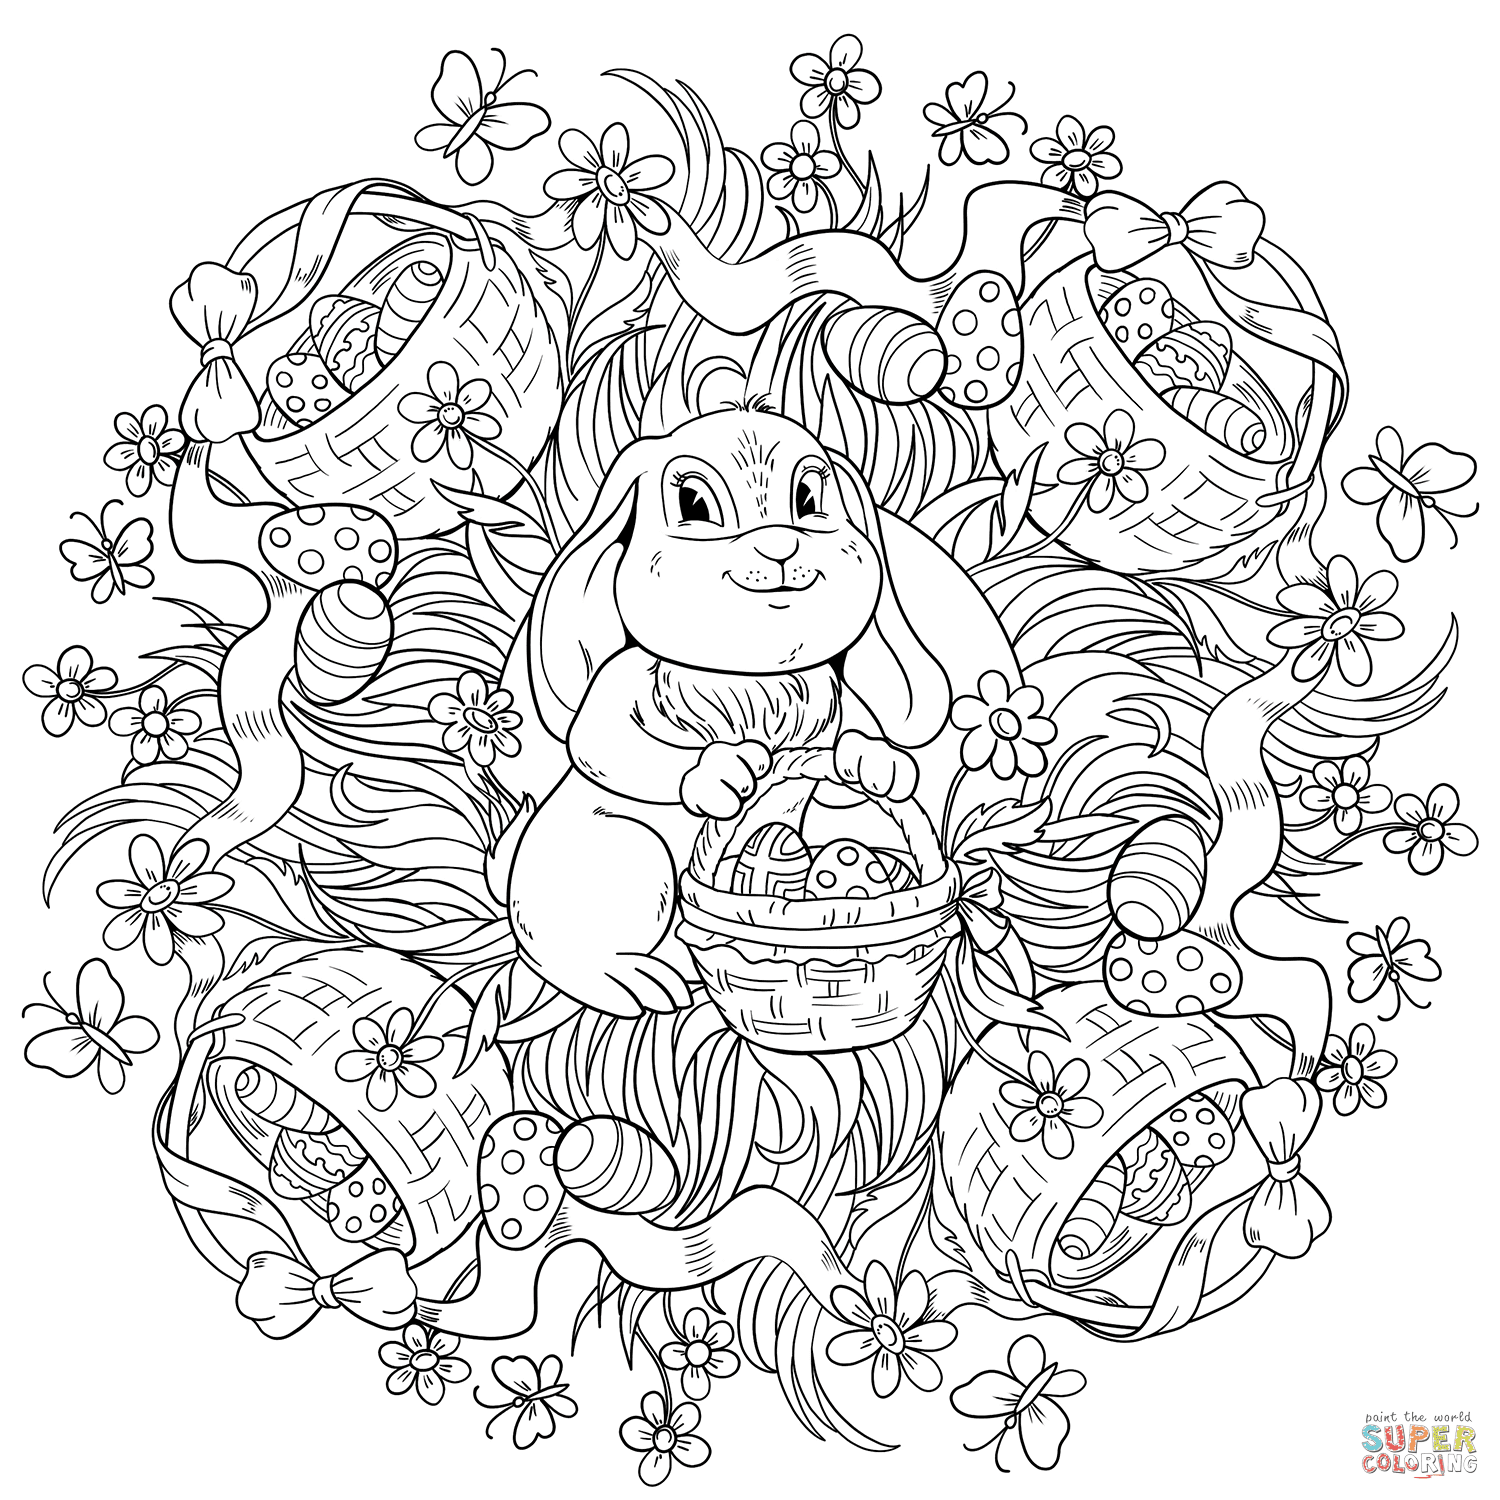 Easter Mandala with a Rabit and Buskets Full of Eggs ...